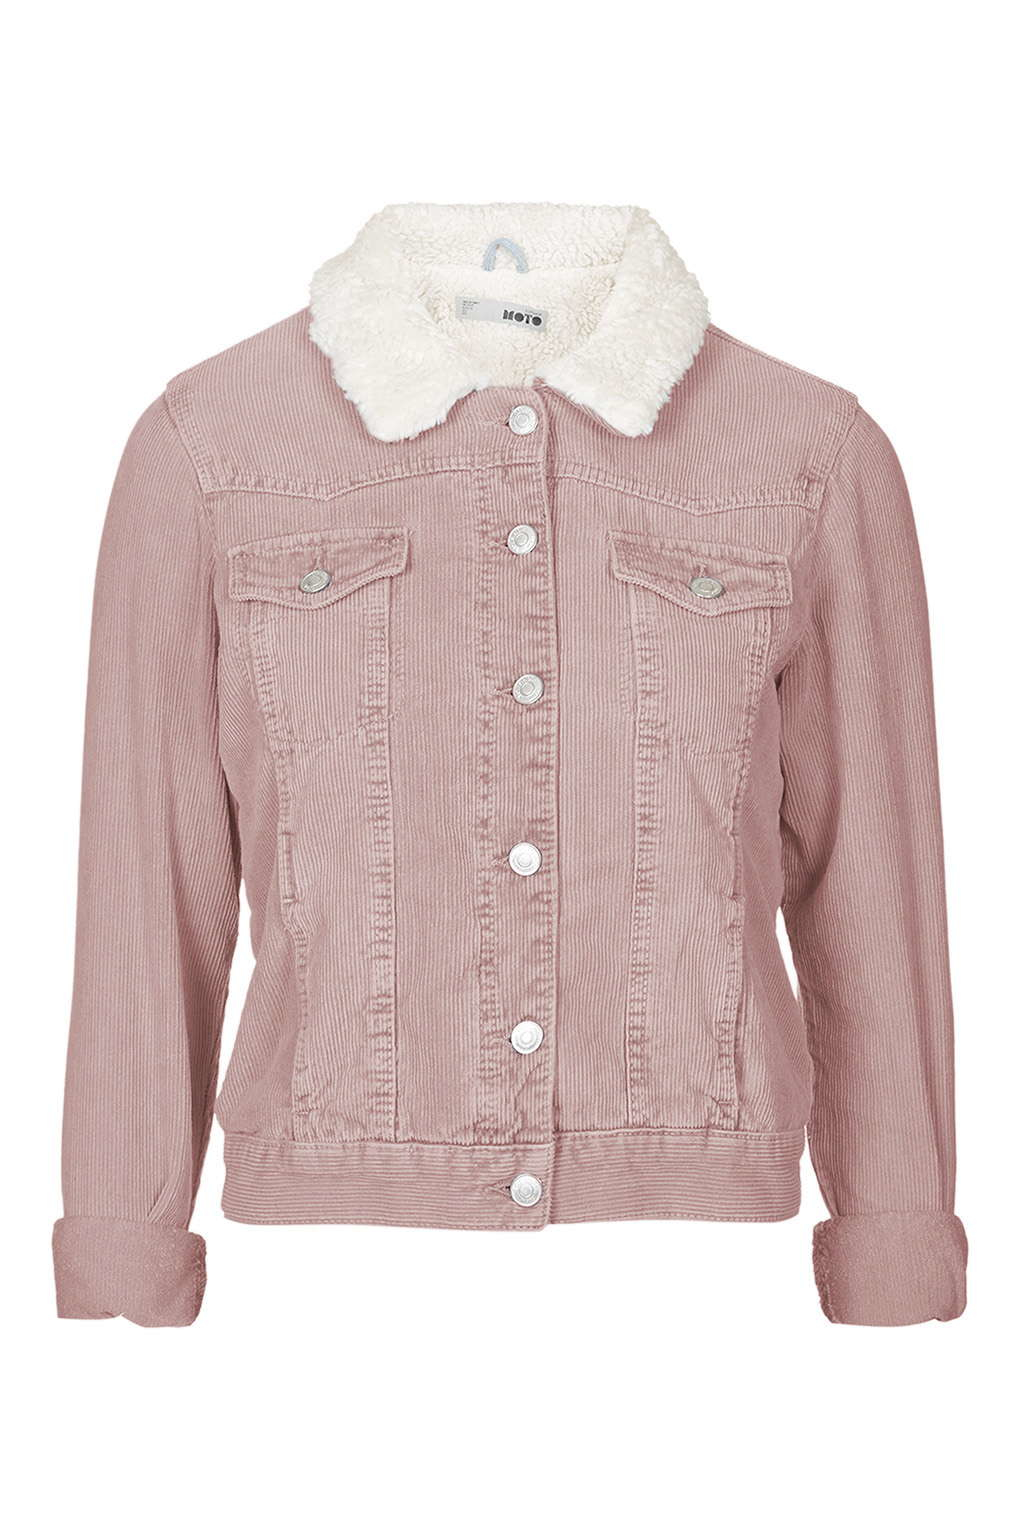 Topshop Moto Pink Cord Borg Western Jacket in Pink | Lyst